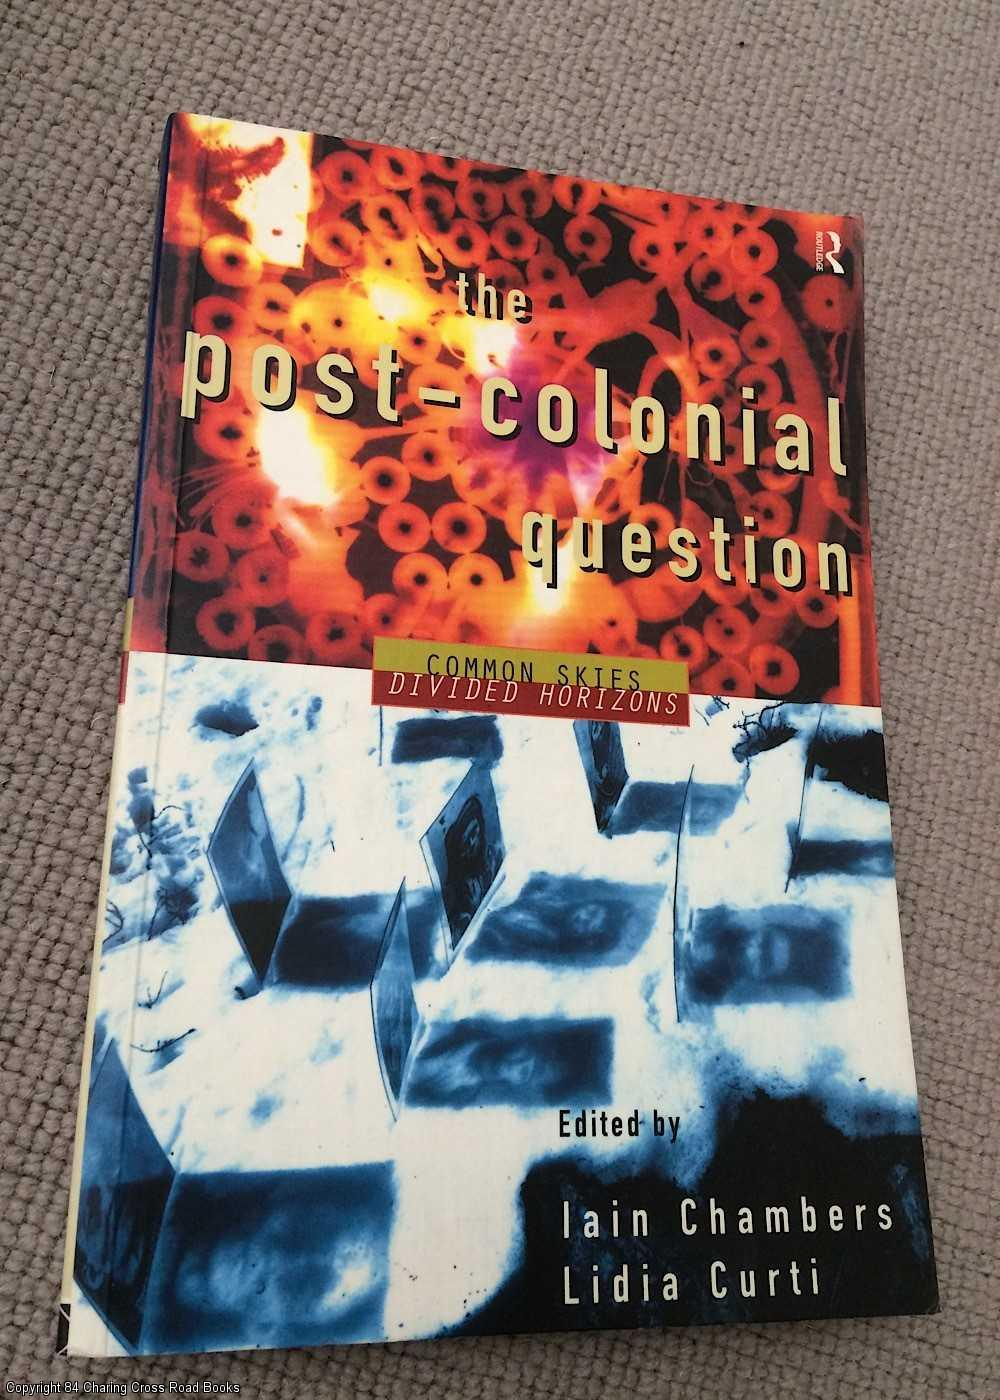 CURTI, LIDIA,CHAMBERS, IAIN - The Postcolonial Question: Common Skies, Divided Horizons